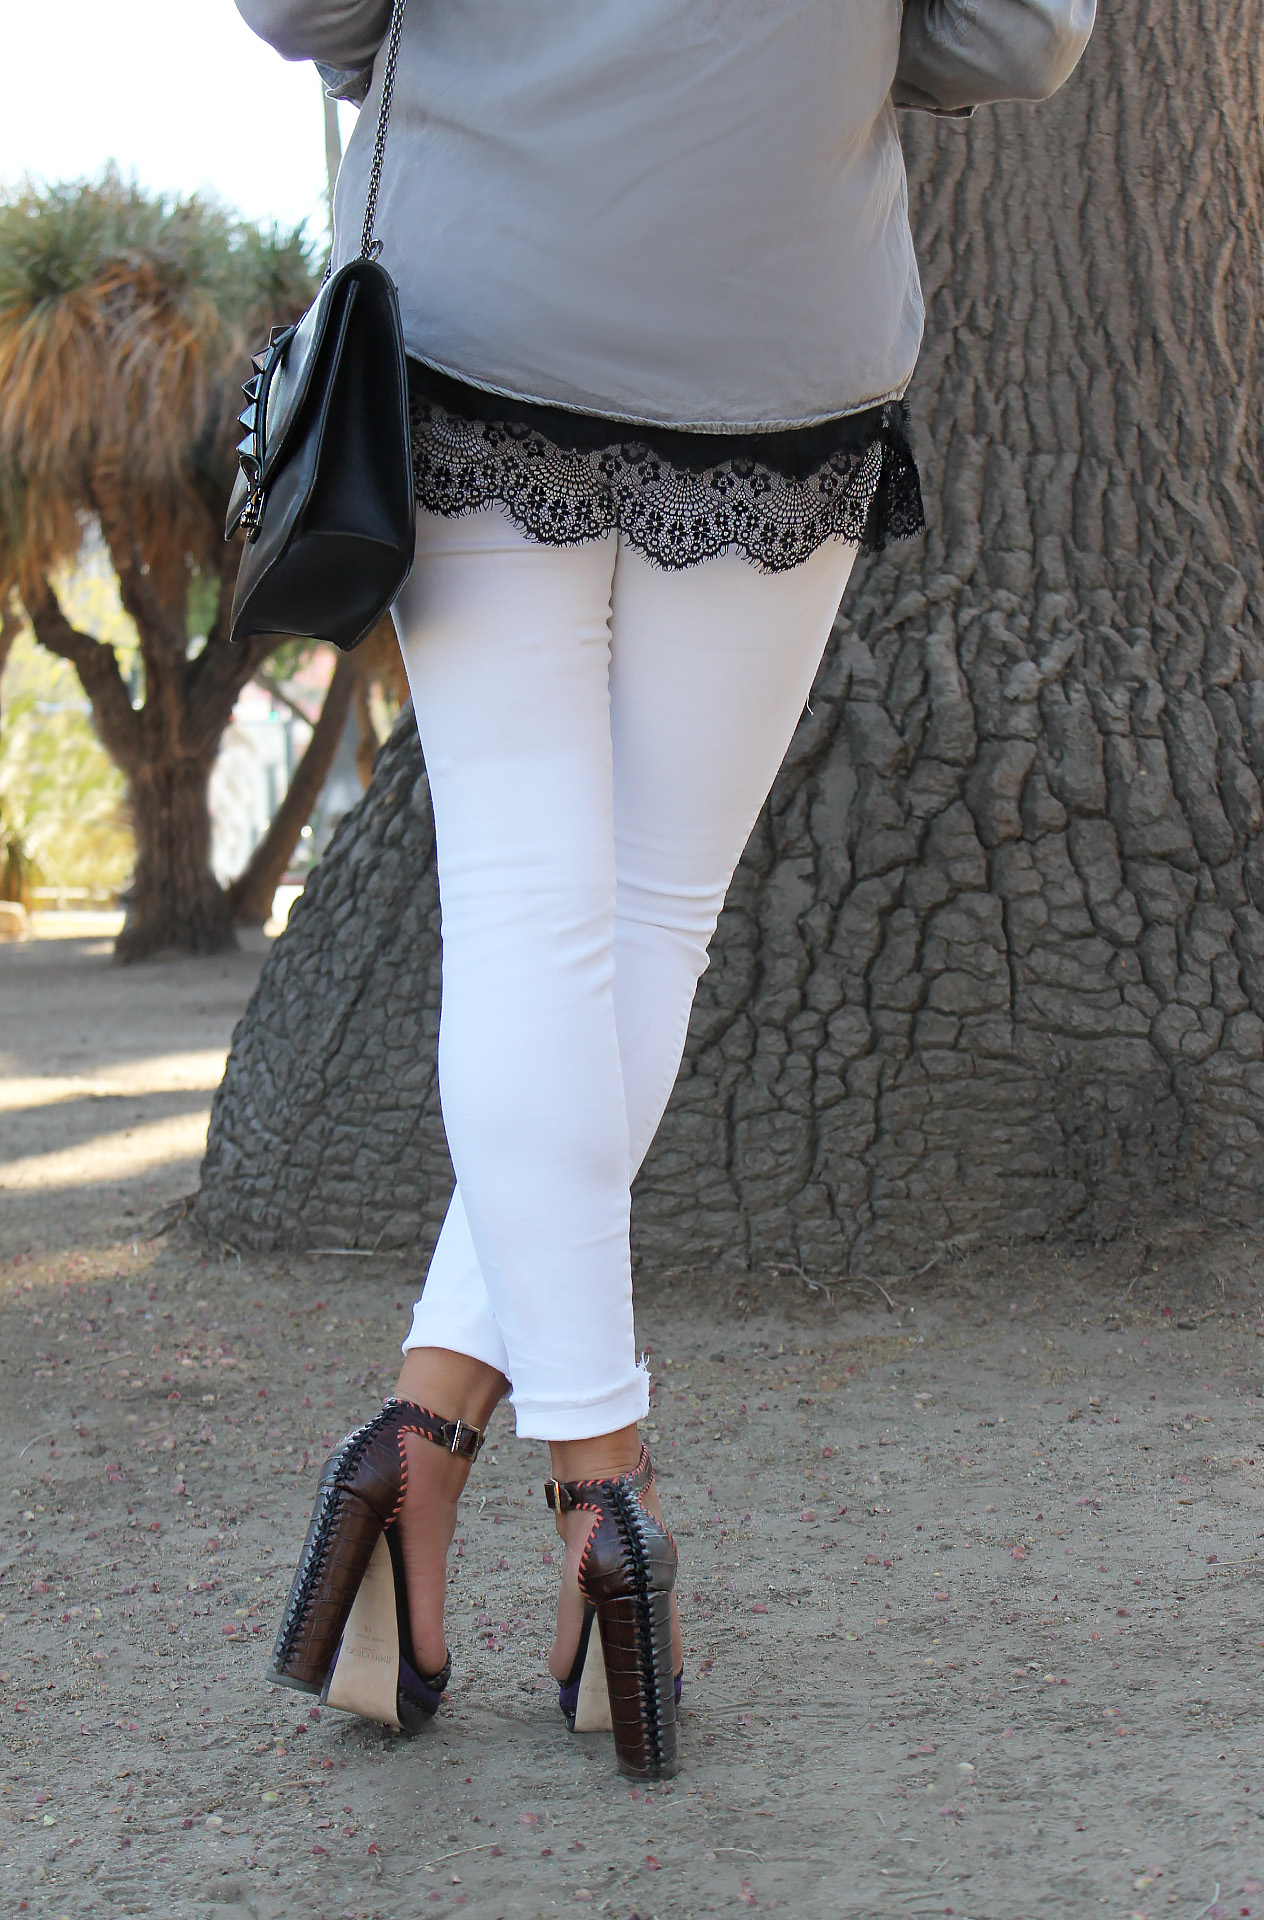 mel-ronnie-jimmy-choo-game-grey-top-lace-cami-black-white-denim-jeans-outfit-valentino-rockstud-bag-2.jpg